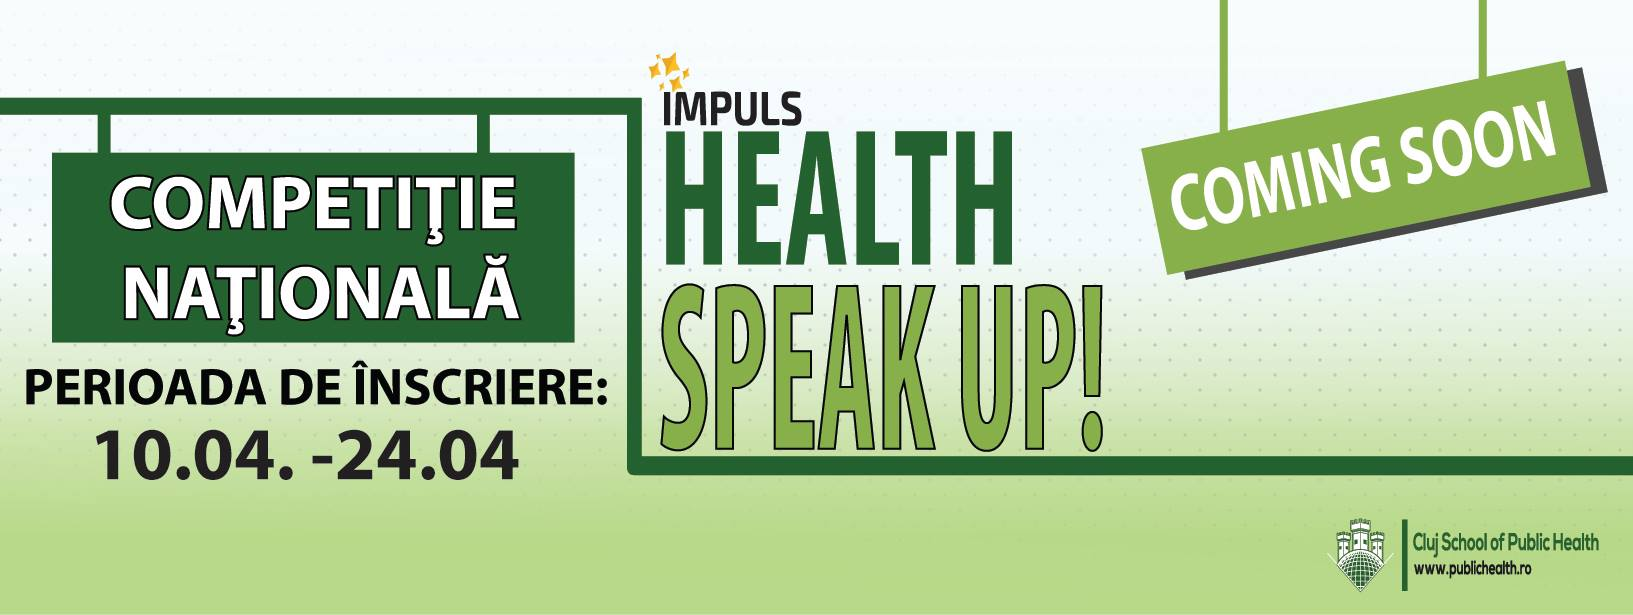 "Competiție națională ""Health Speak Up"""